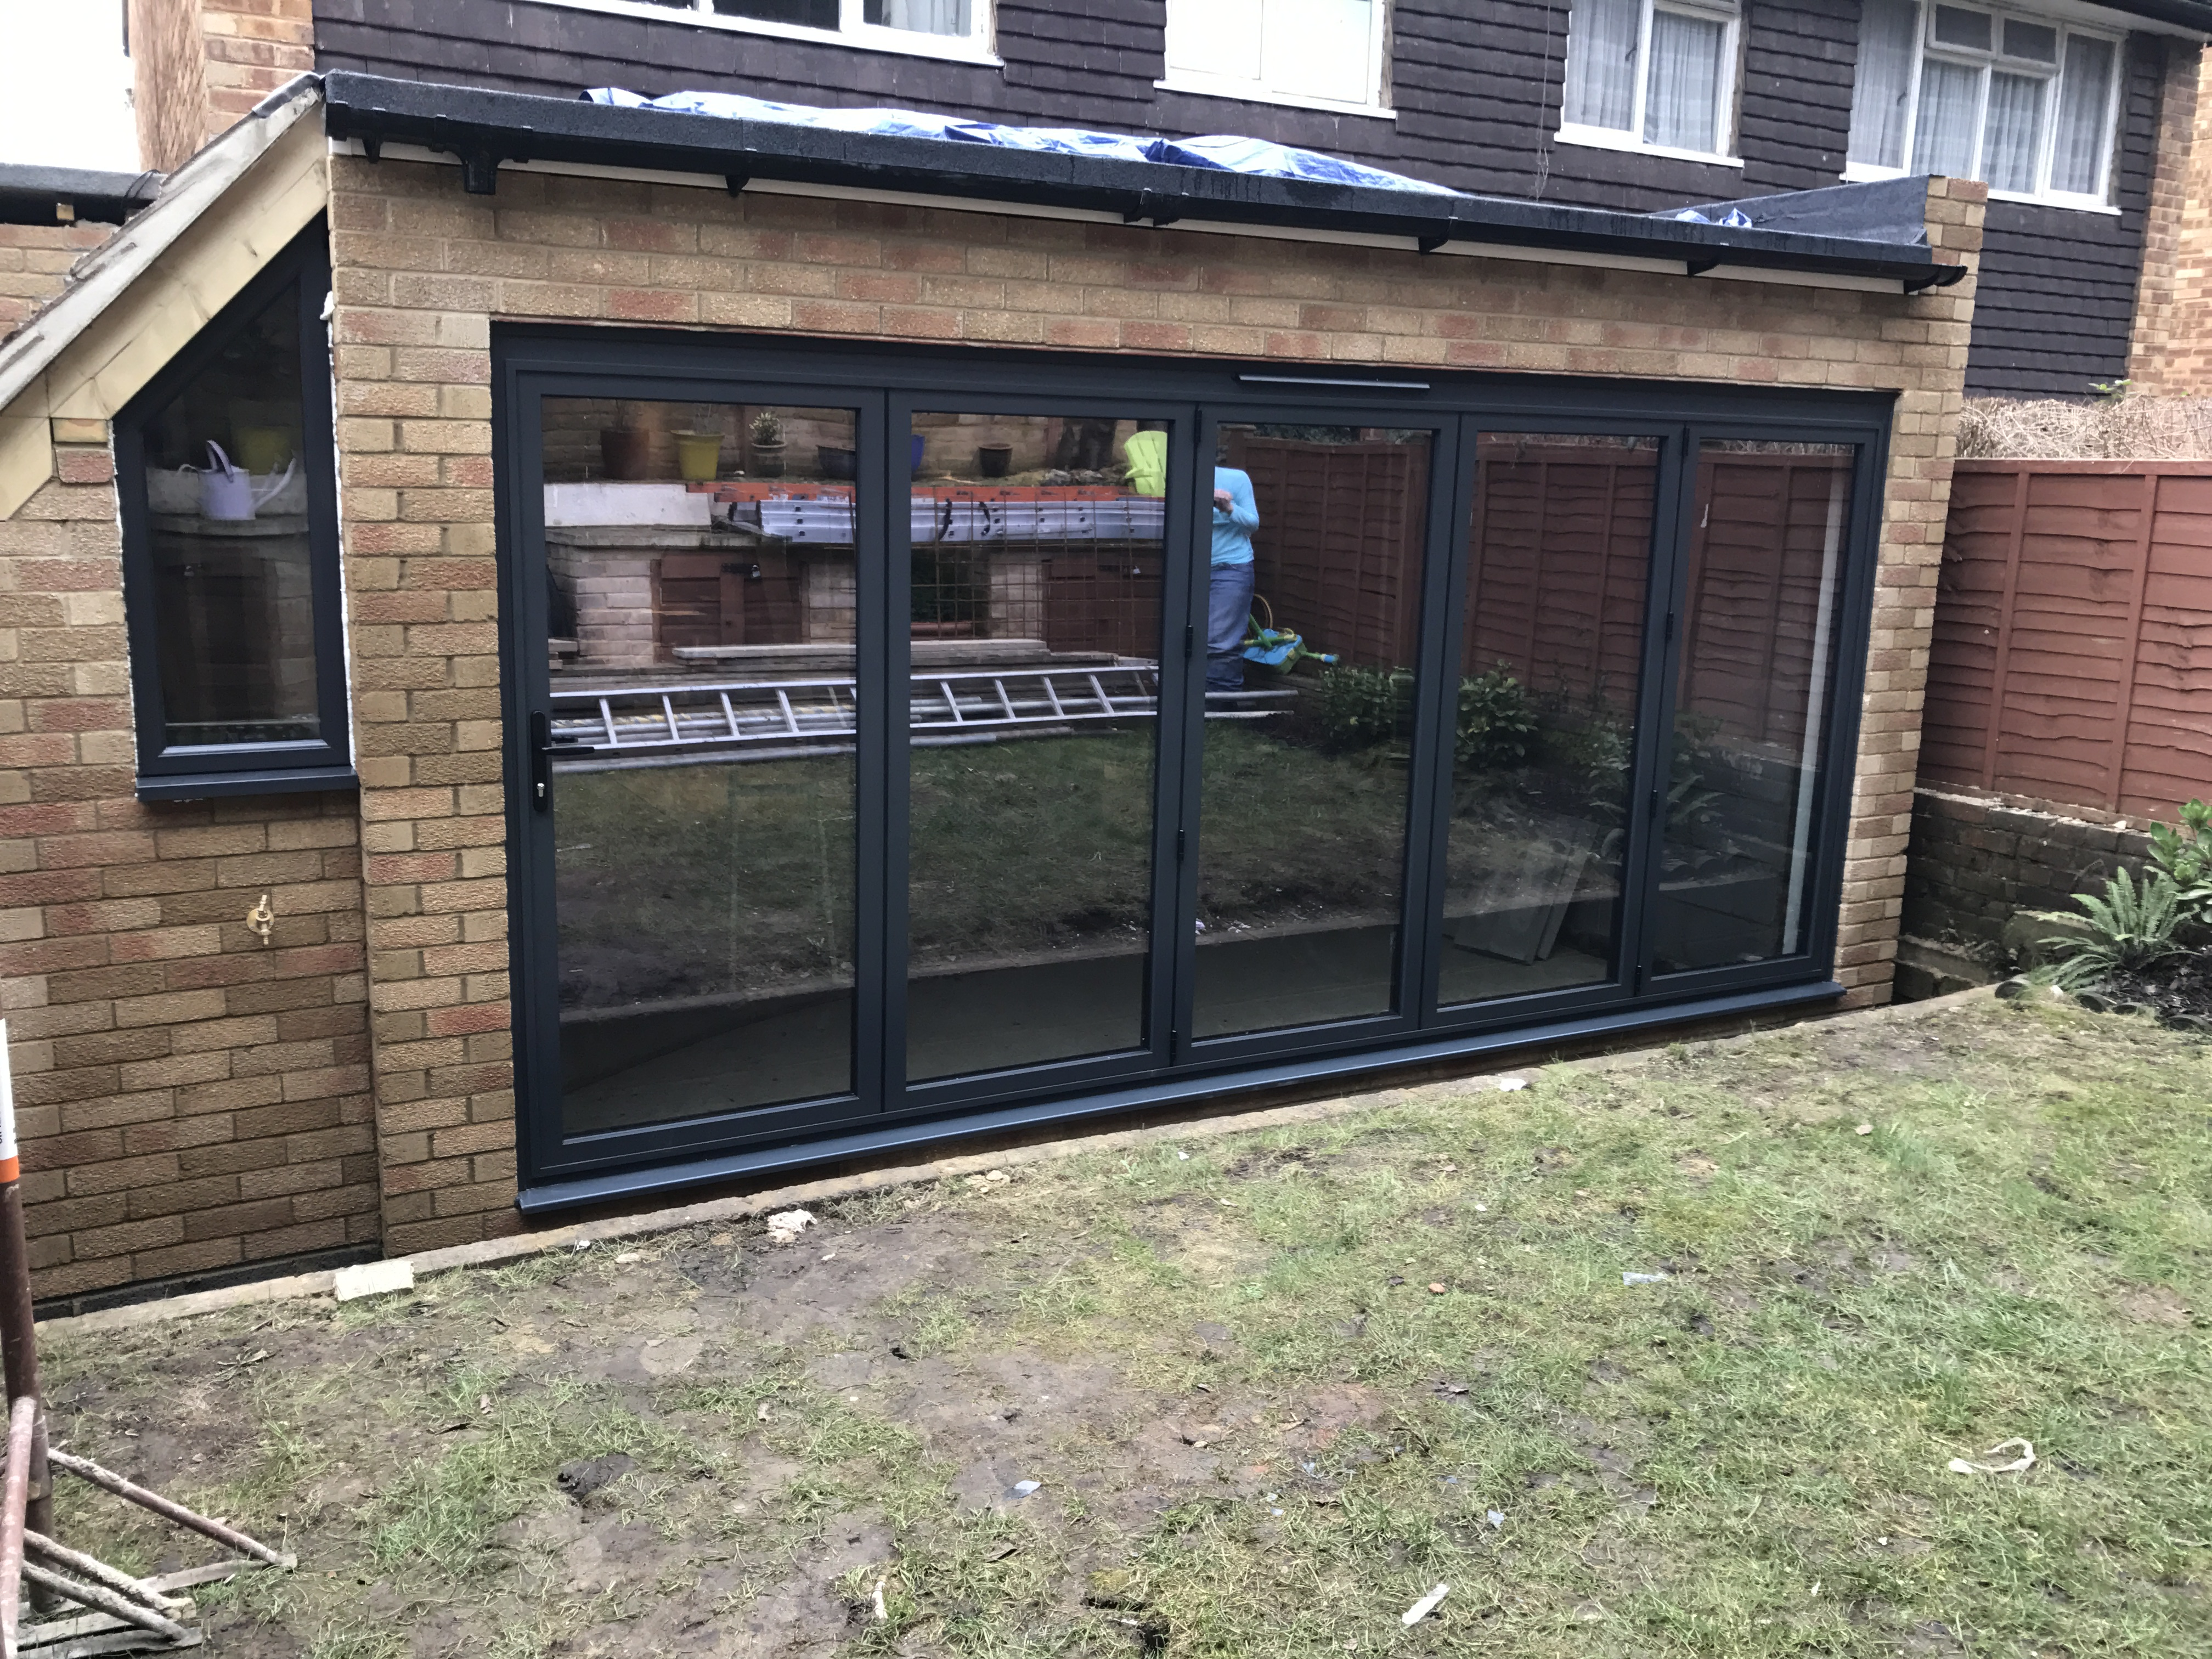 Aluminium Shaped fixed window and bifolding doors fitted into extension